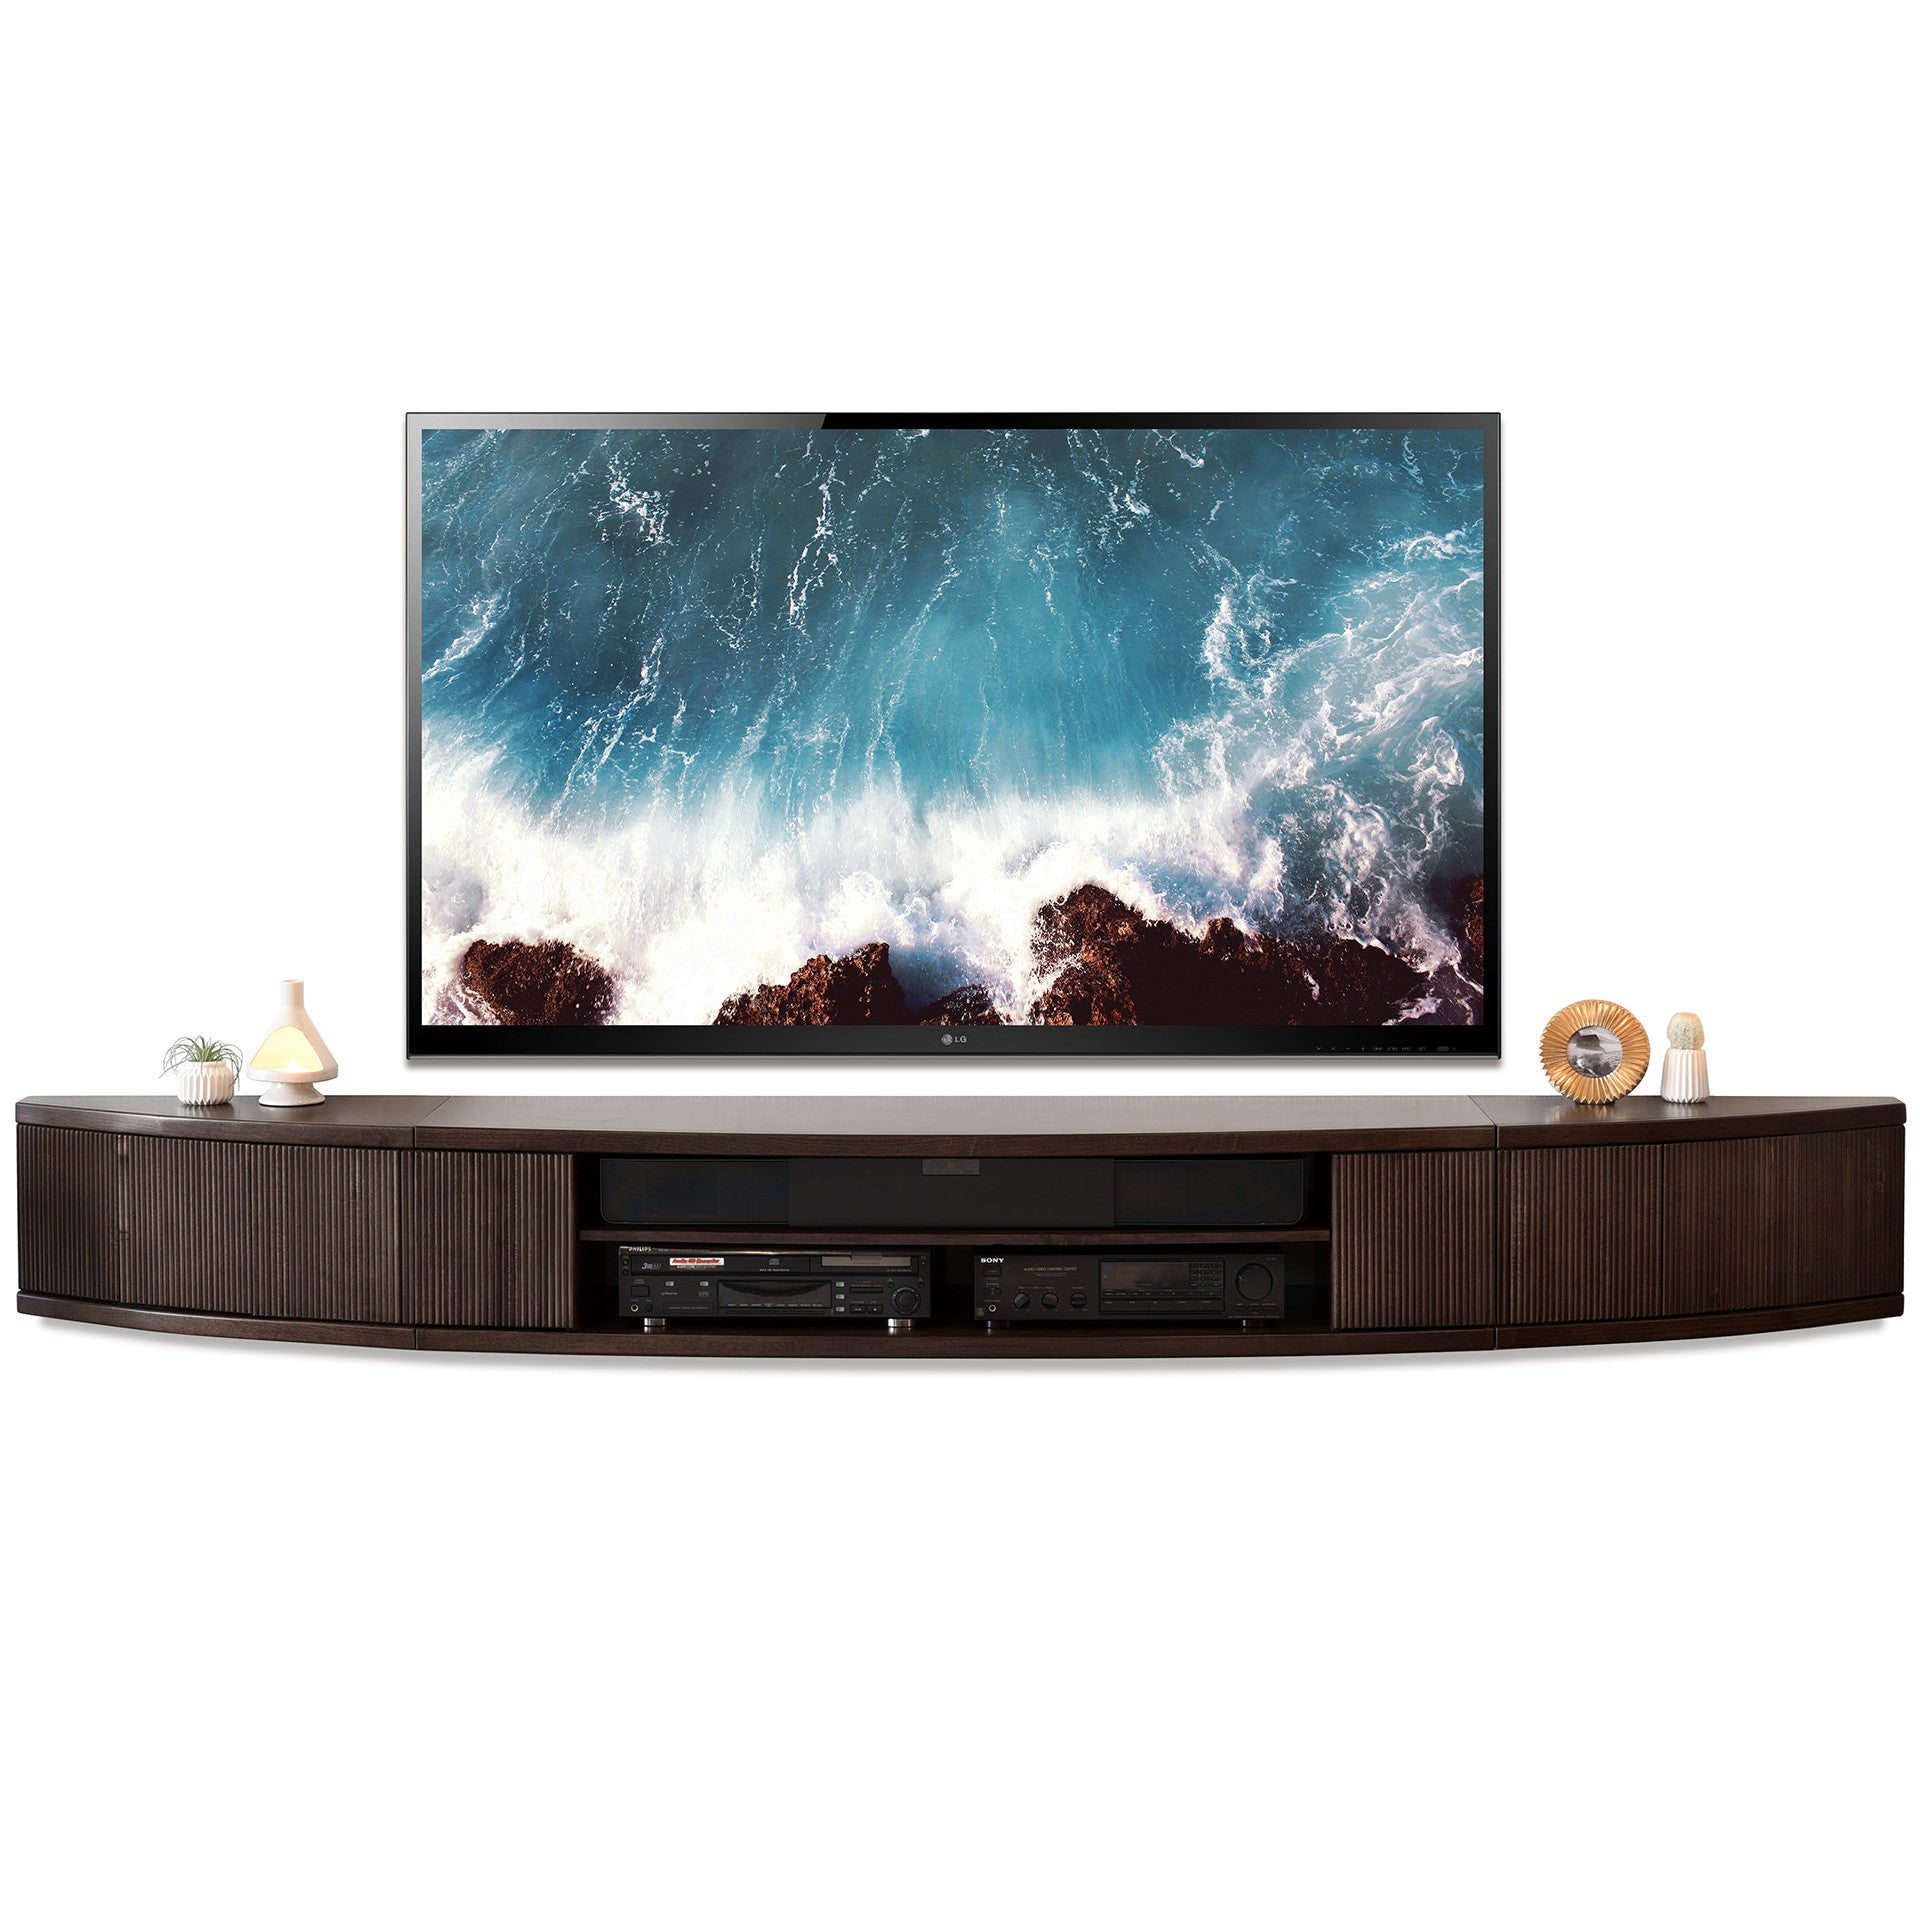 Wall Mount Floating Entertainment Center TV Stand - Arc - Espresso